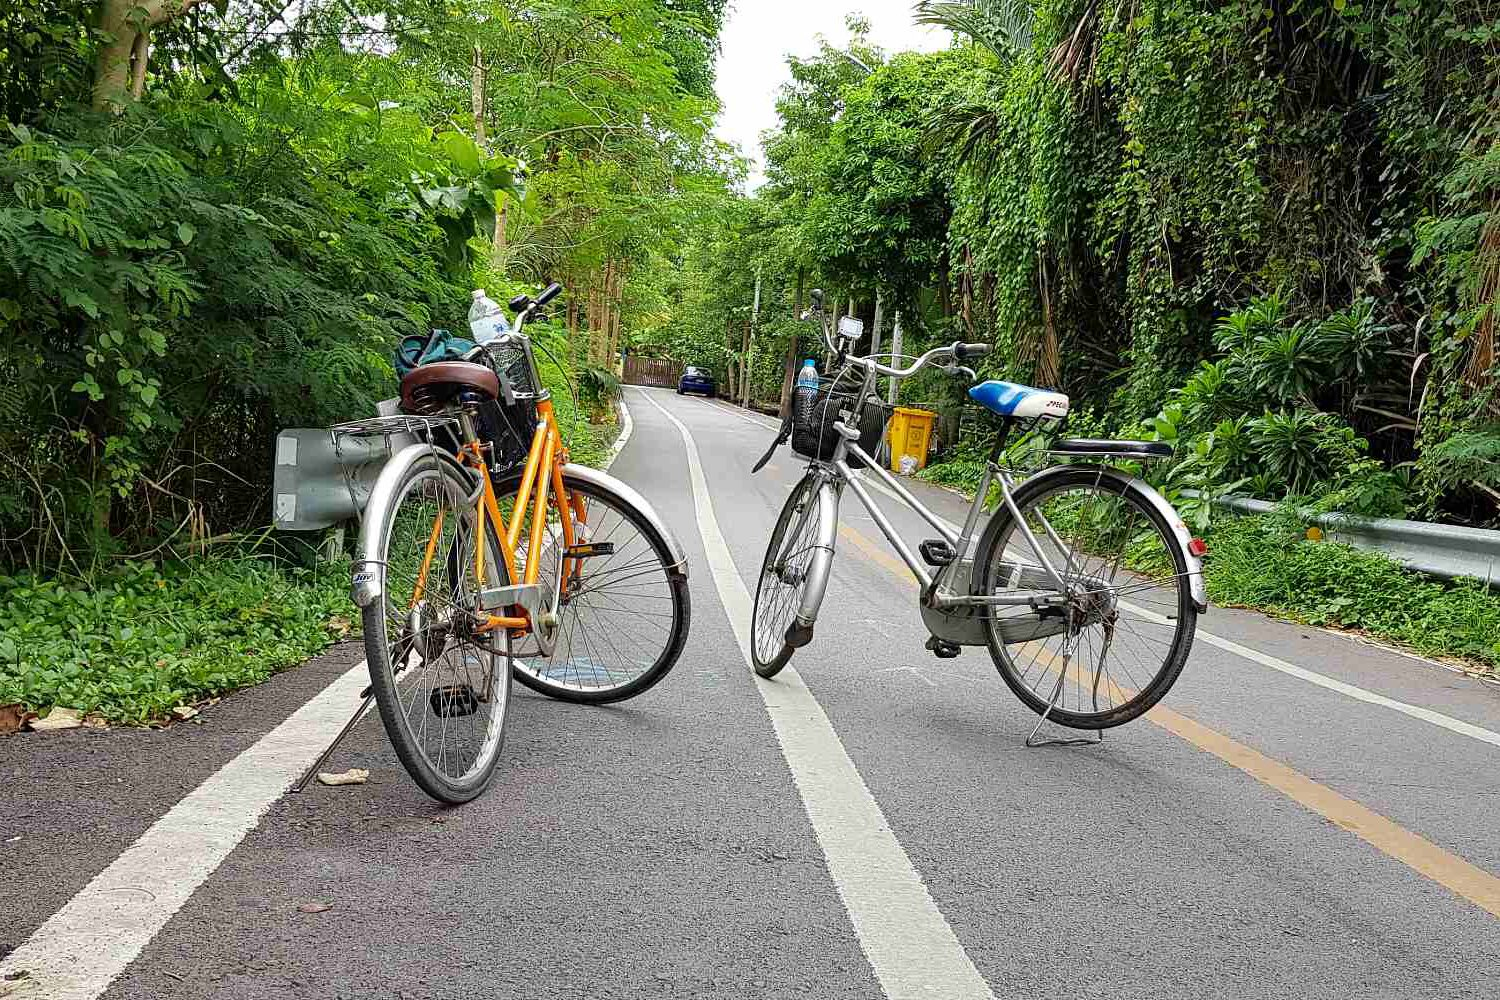 Cycling on the road in Bangkok's Green Lung